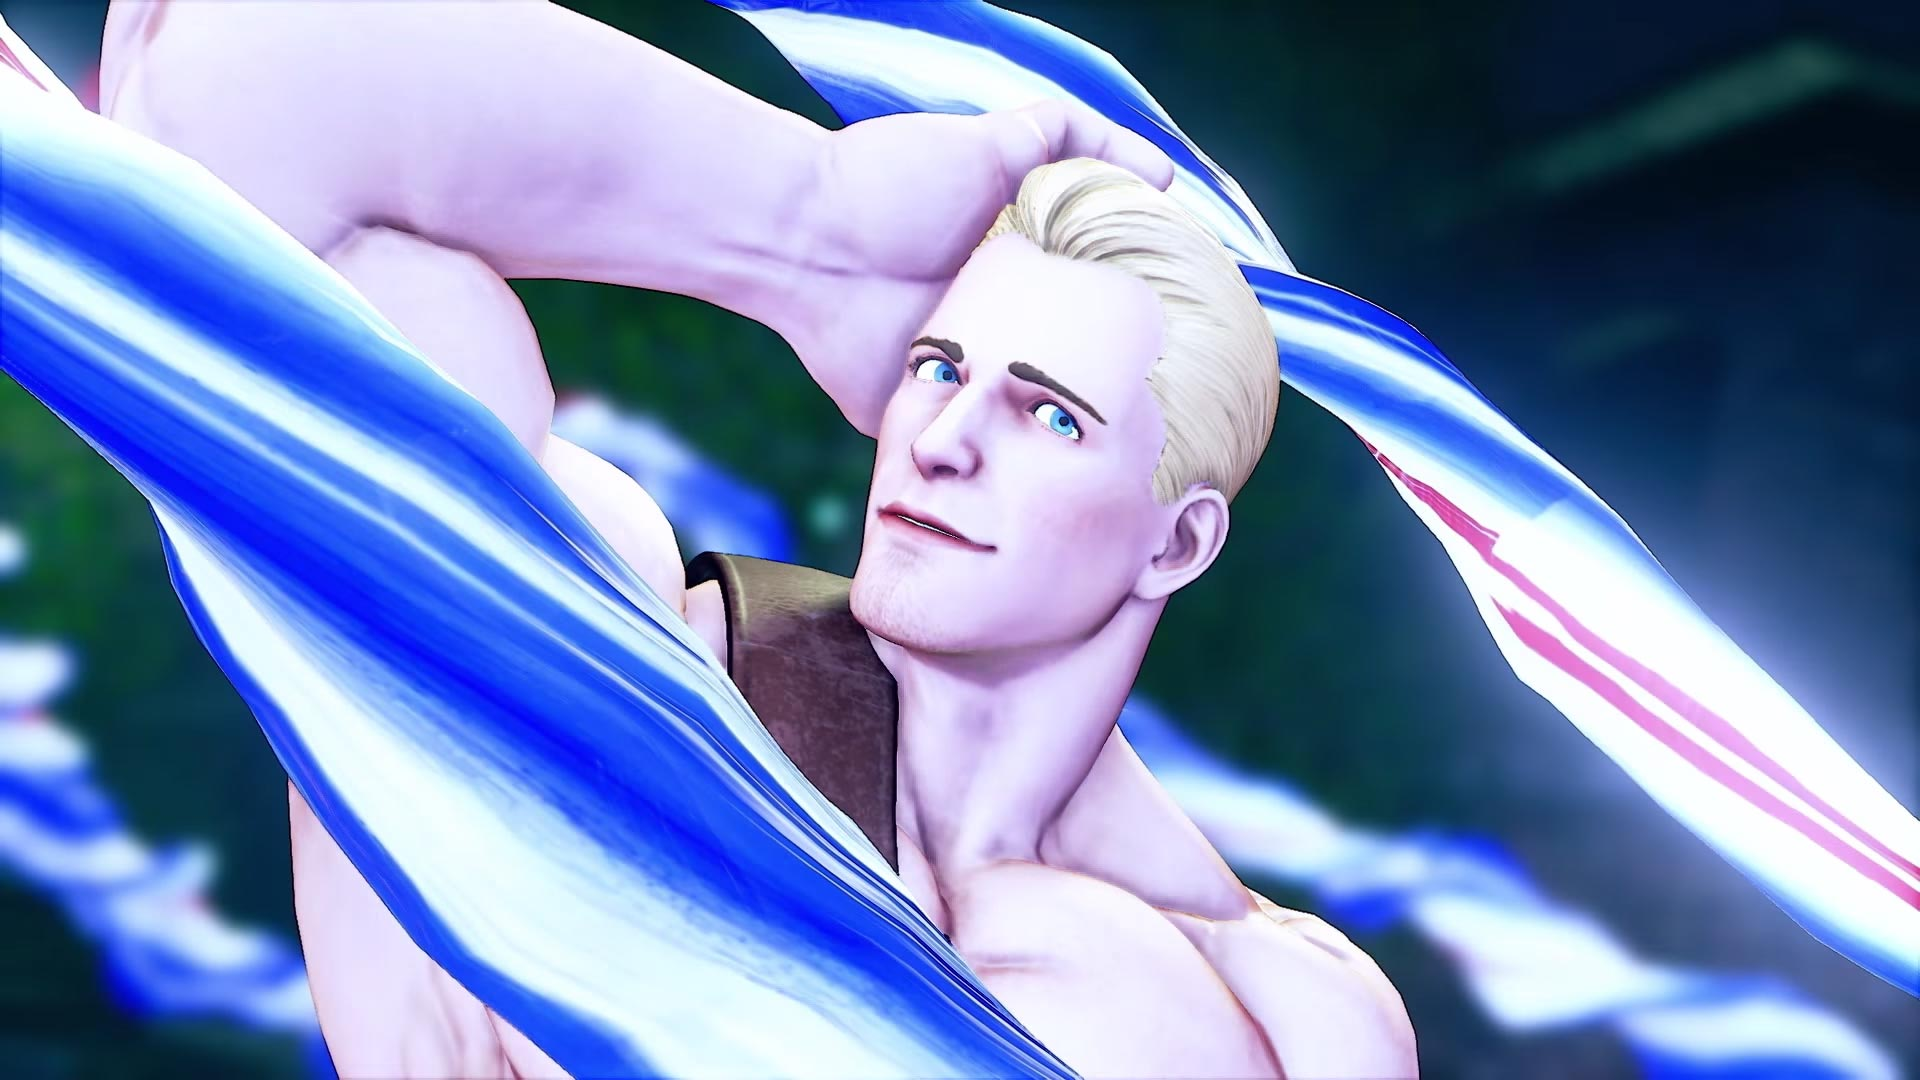 Cody Street Fighter 5: Arcade Edition reveal 9 out of 9 image gallery